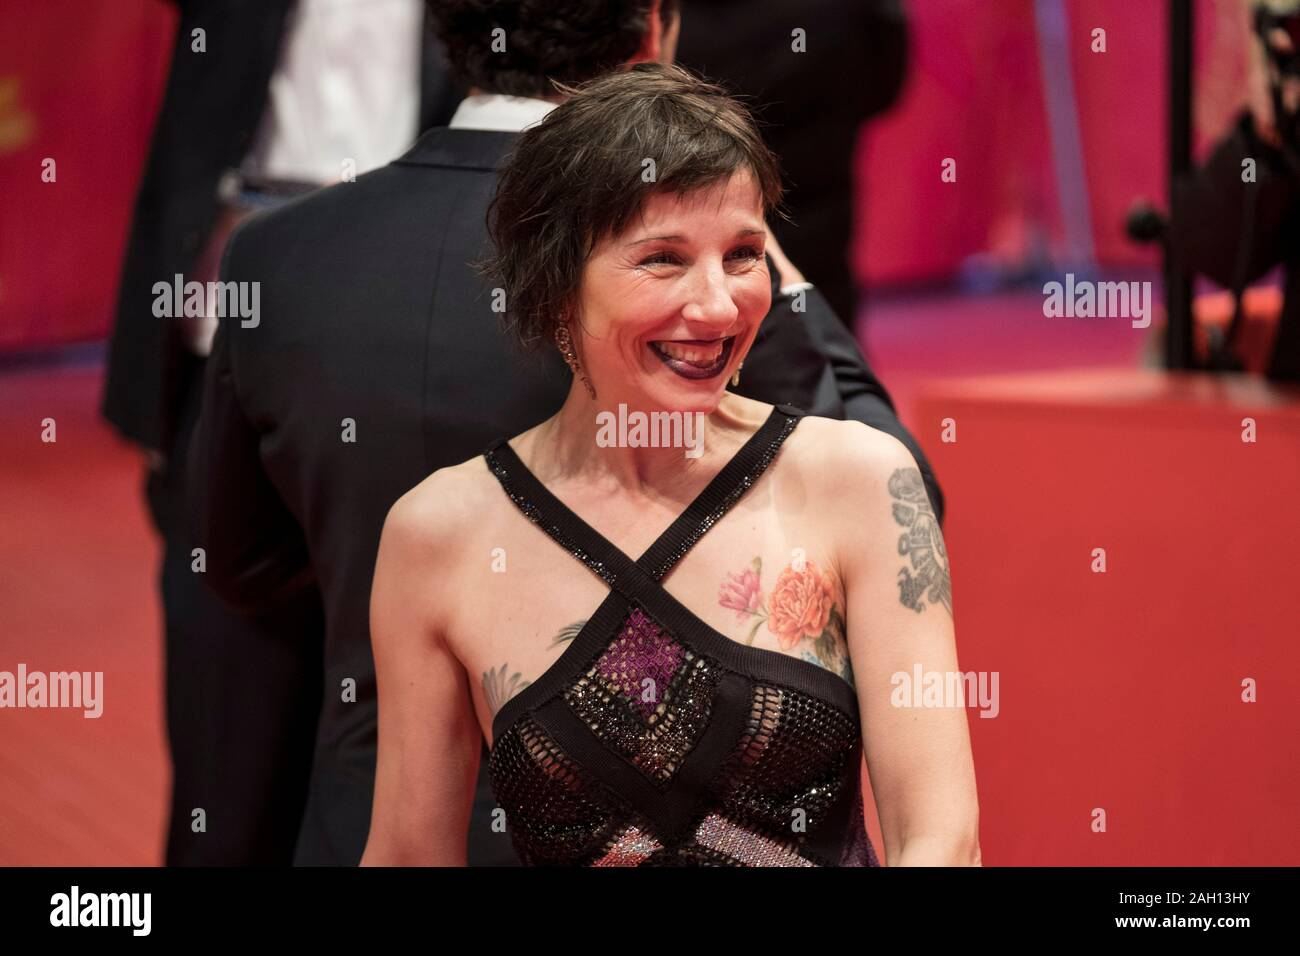 Meret Becker Berlin High Resolution Stock Photography And Images Alamy